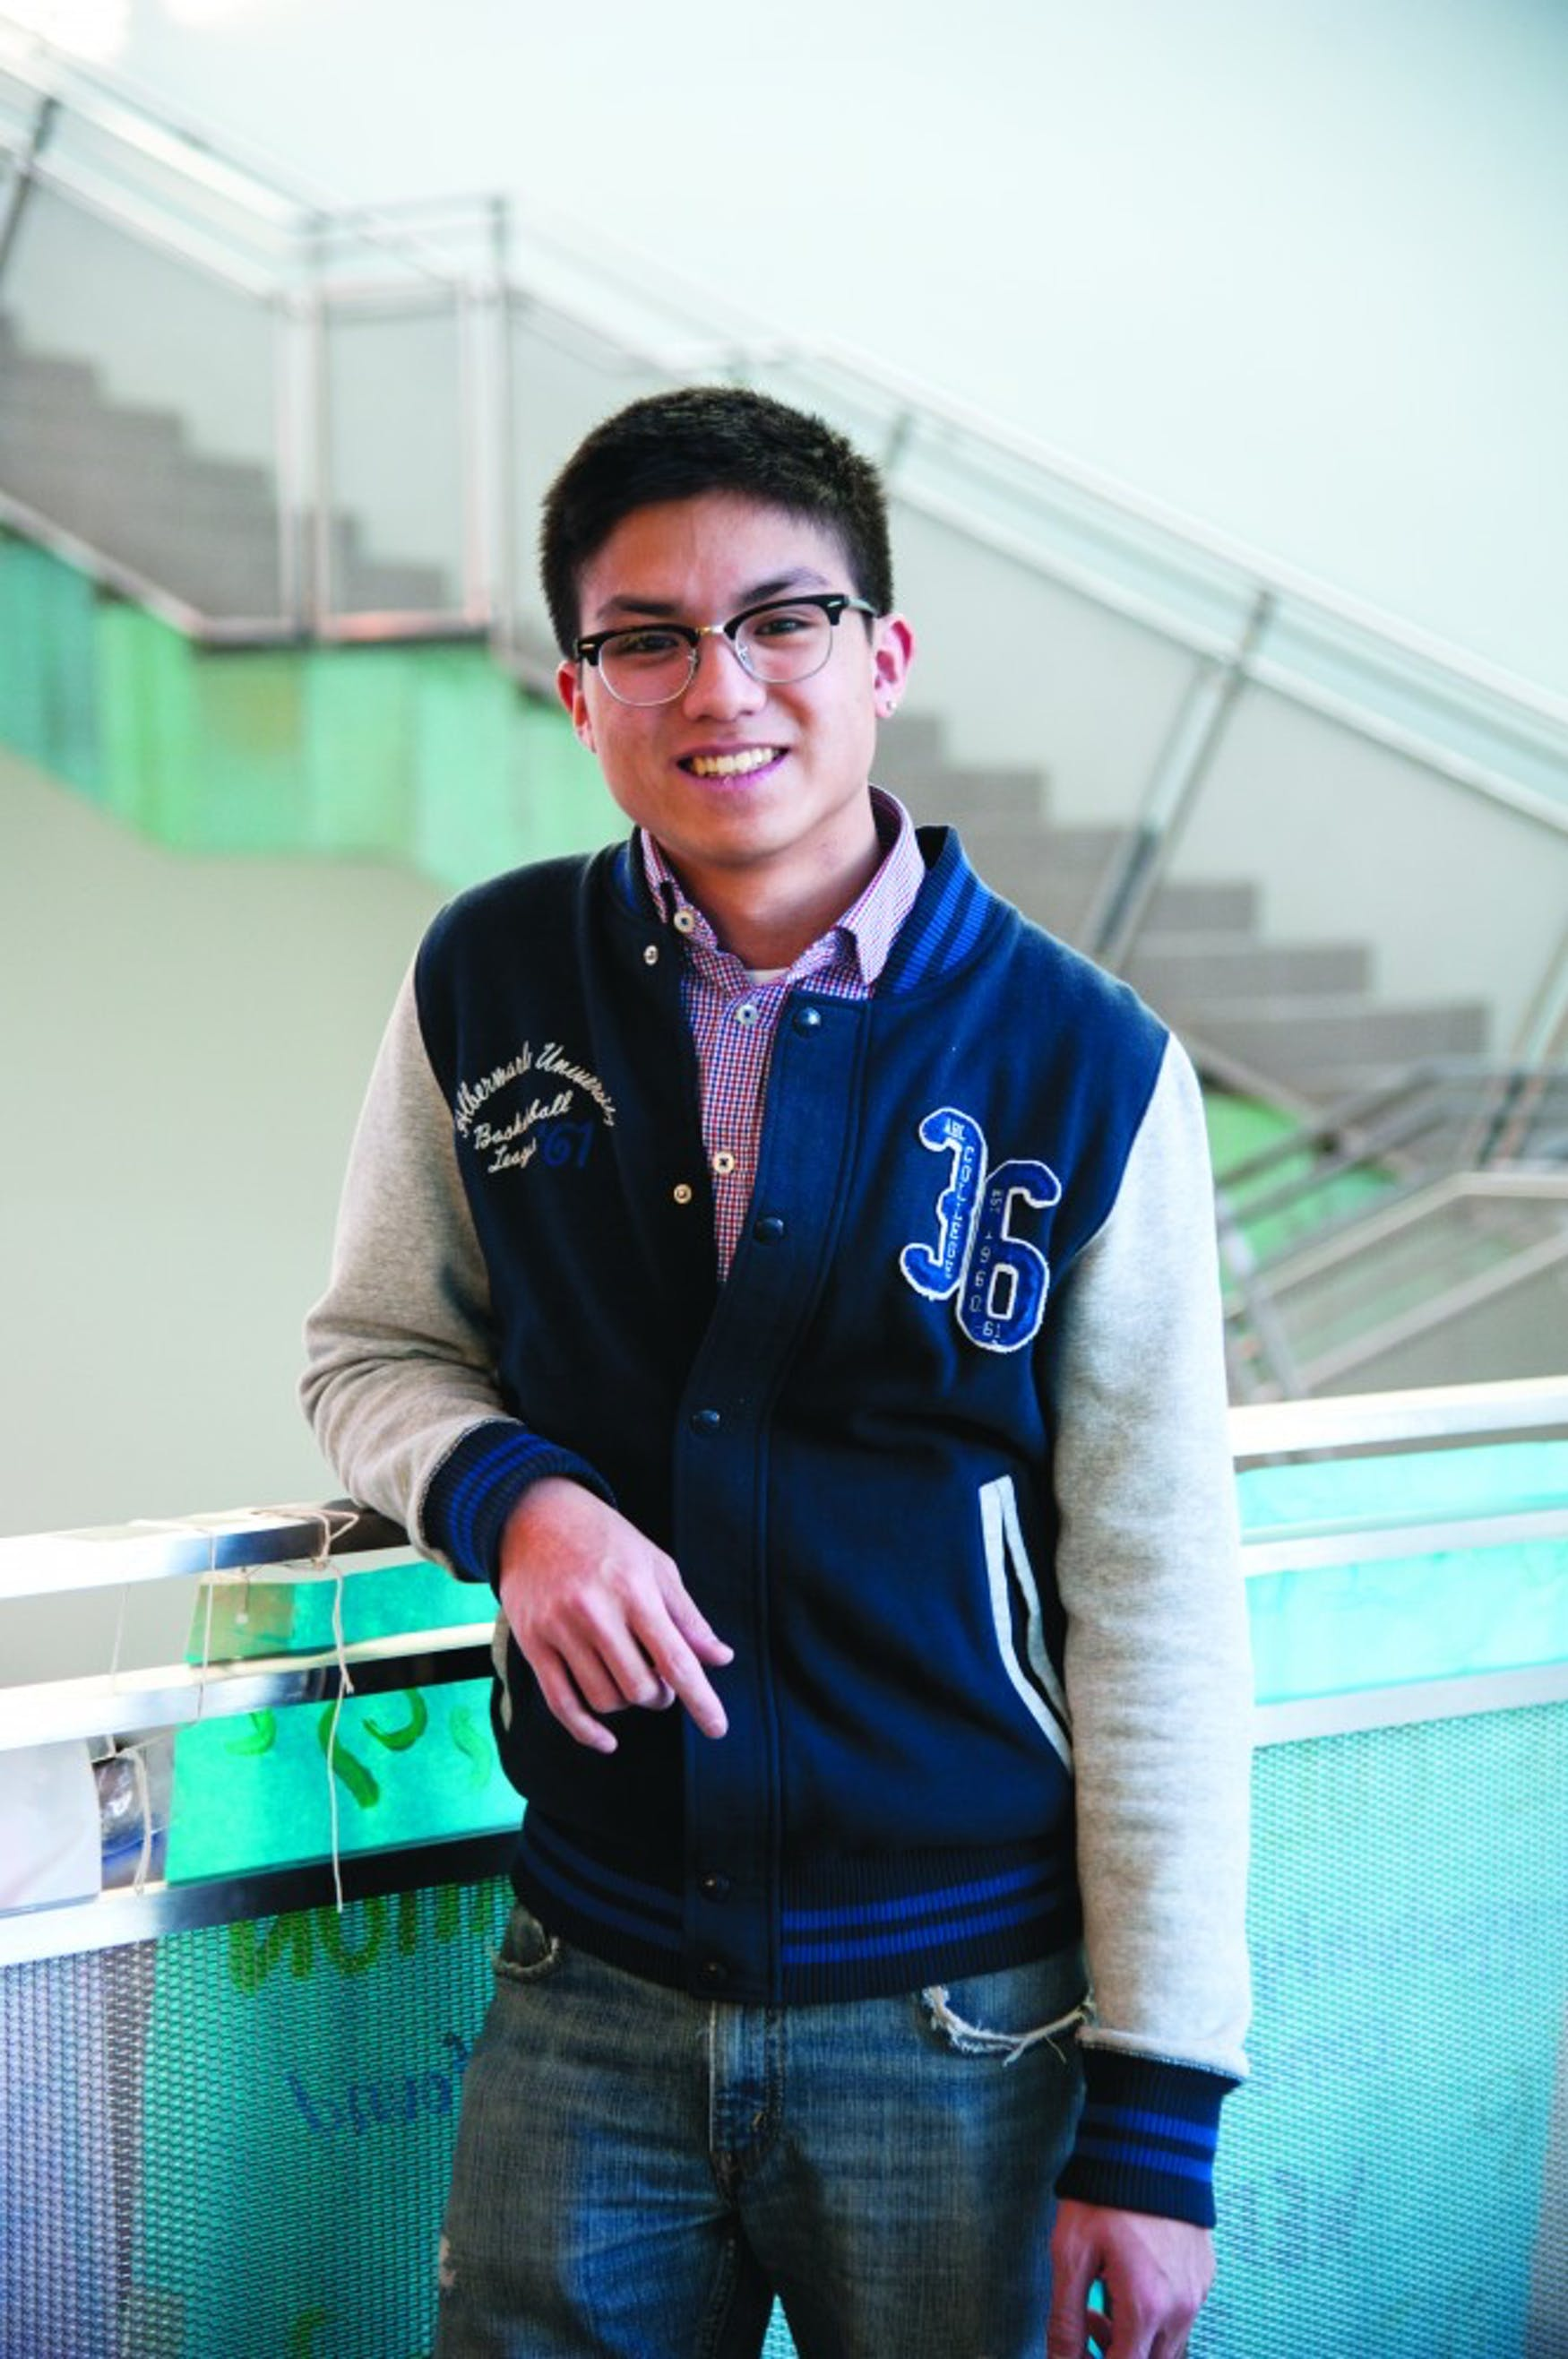 VOICE OF PASSION: Dan Truong '15 feels a personal connection to his campus publication because of his own experience as an Asian-American at Brandeis.